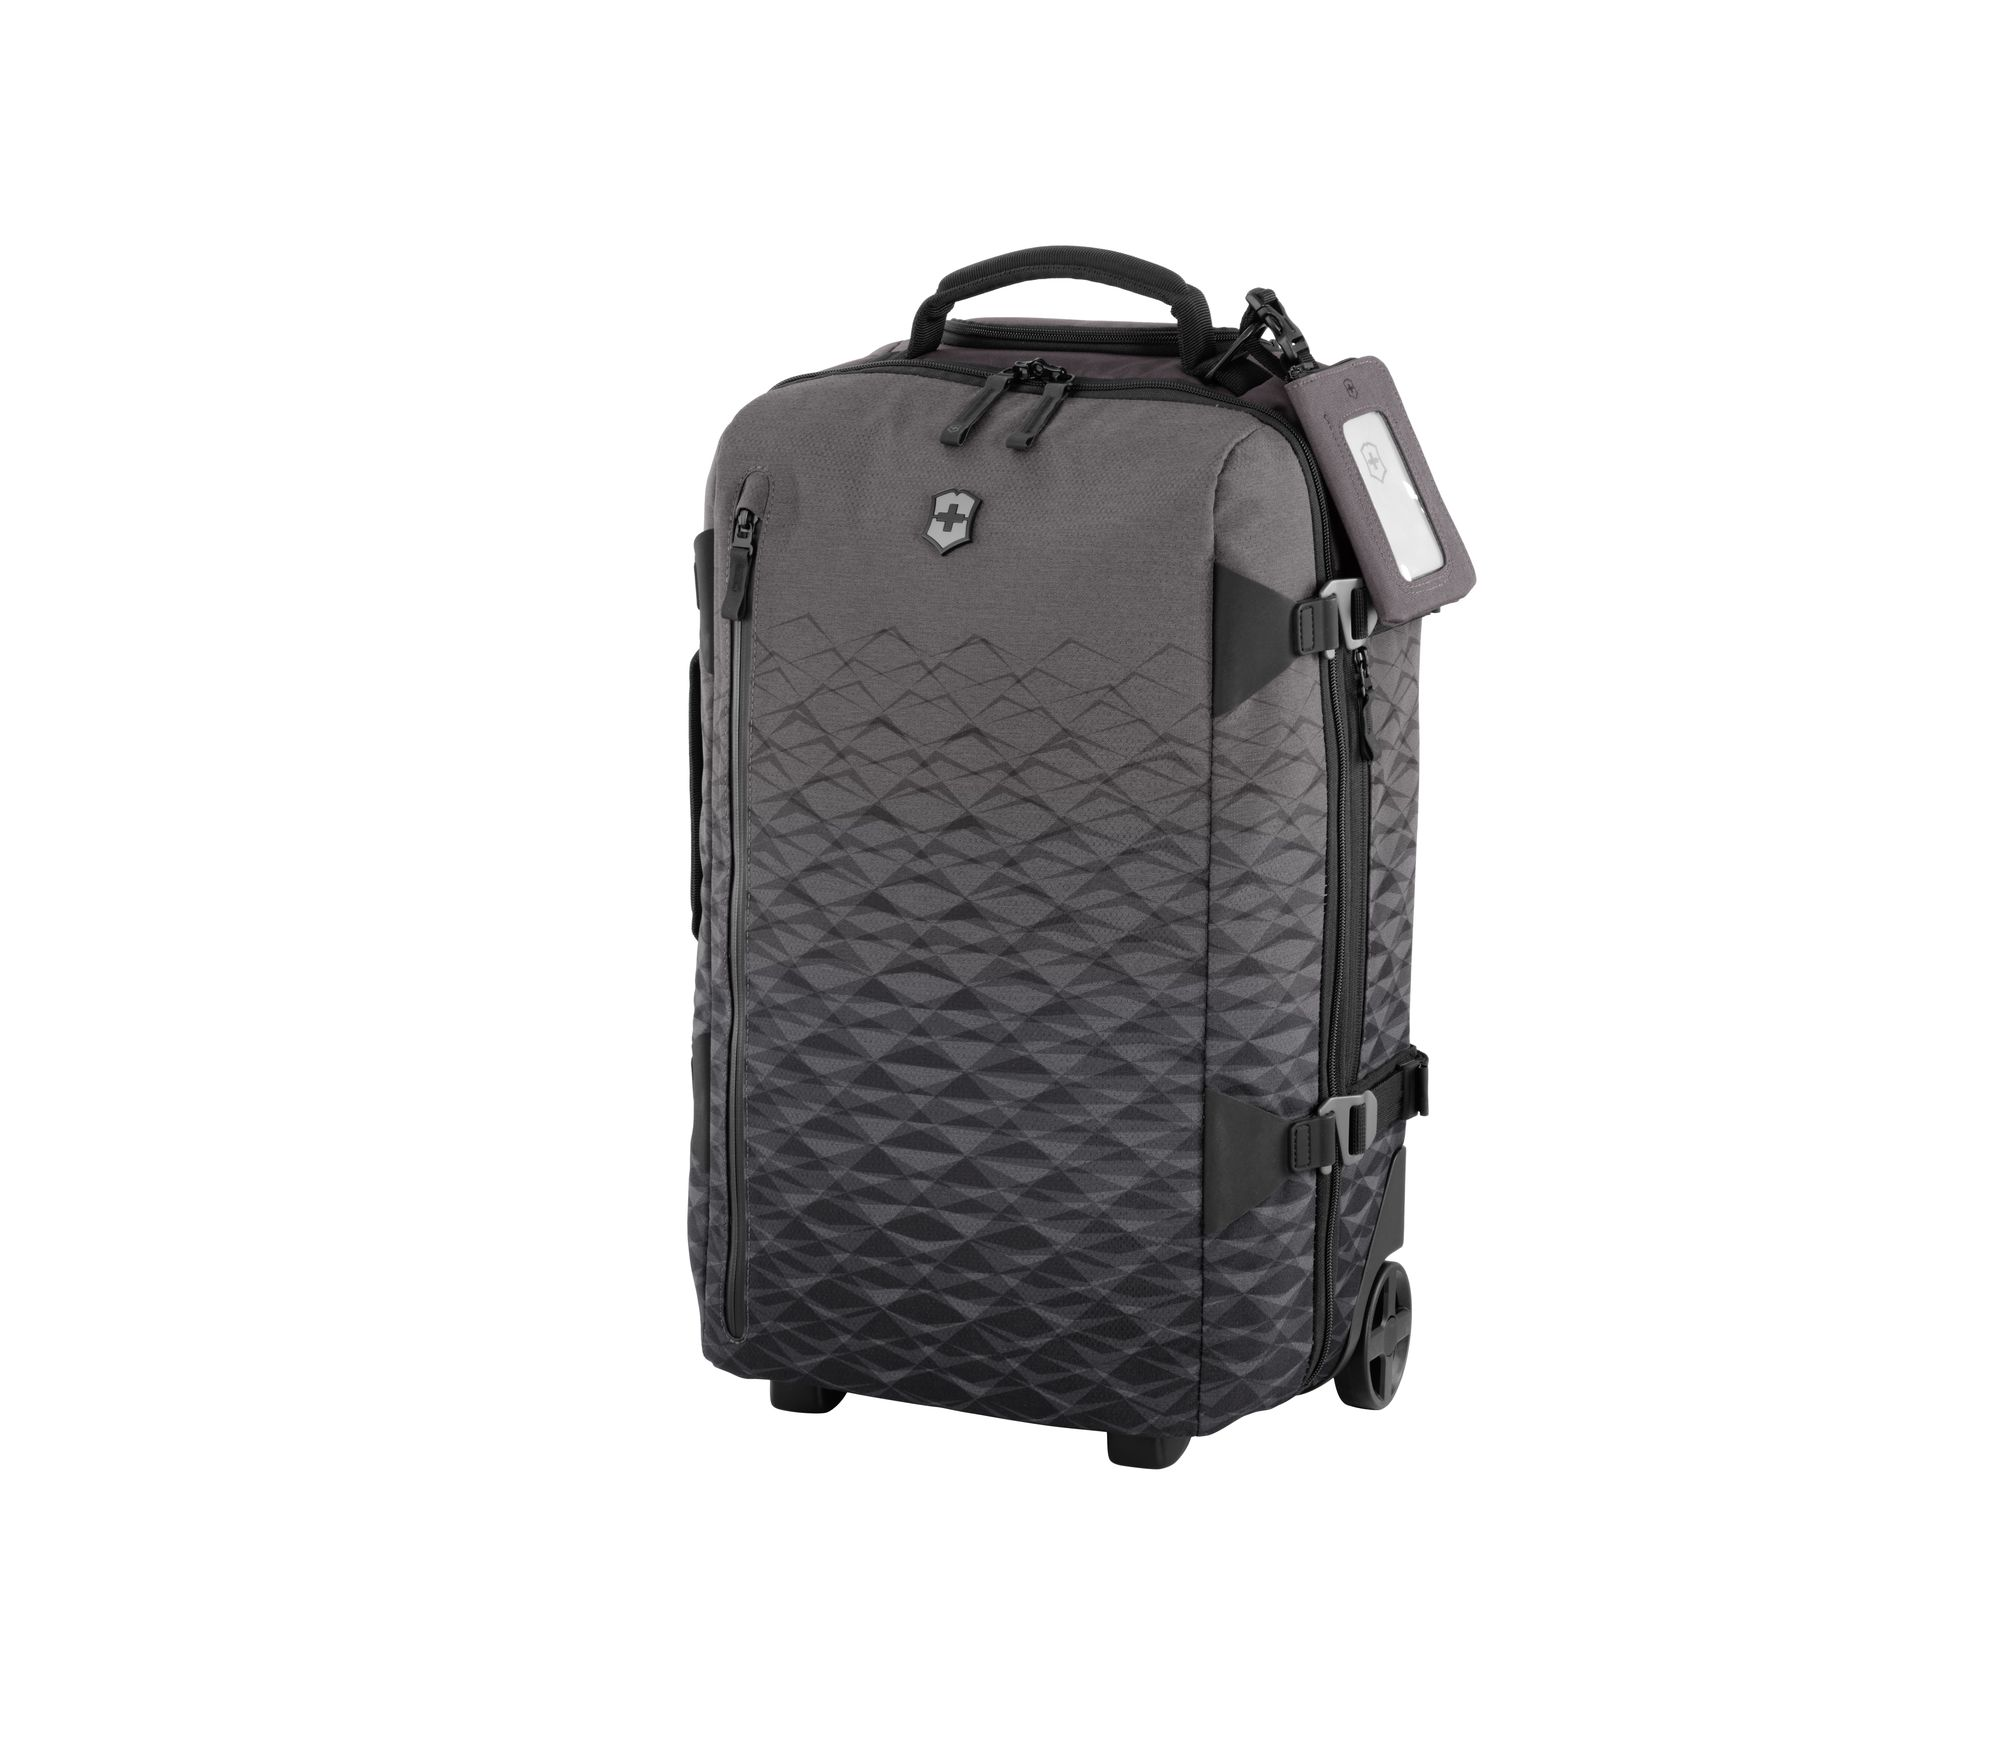 Vx Touring 55cm Wheeled Carry-On